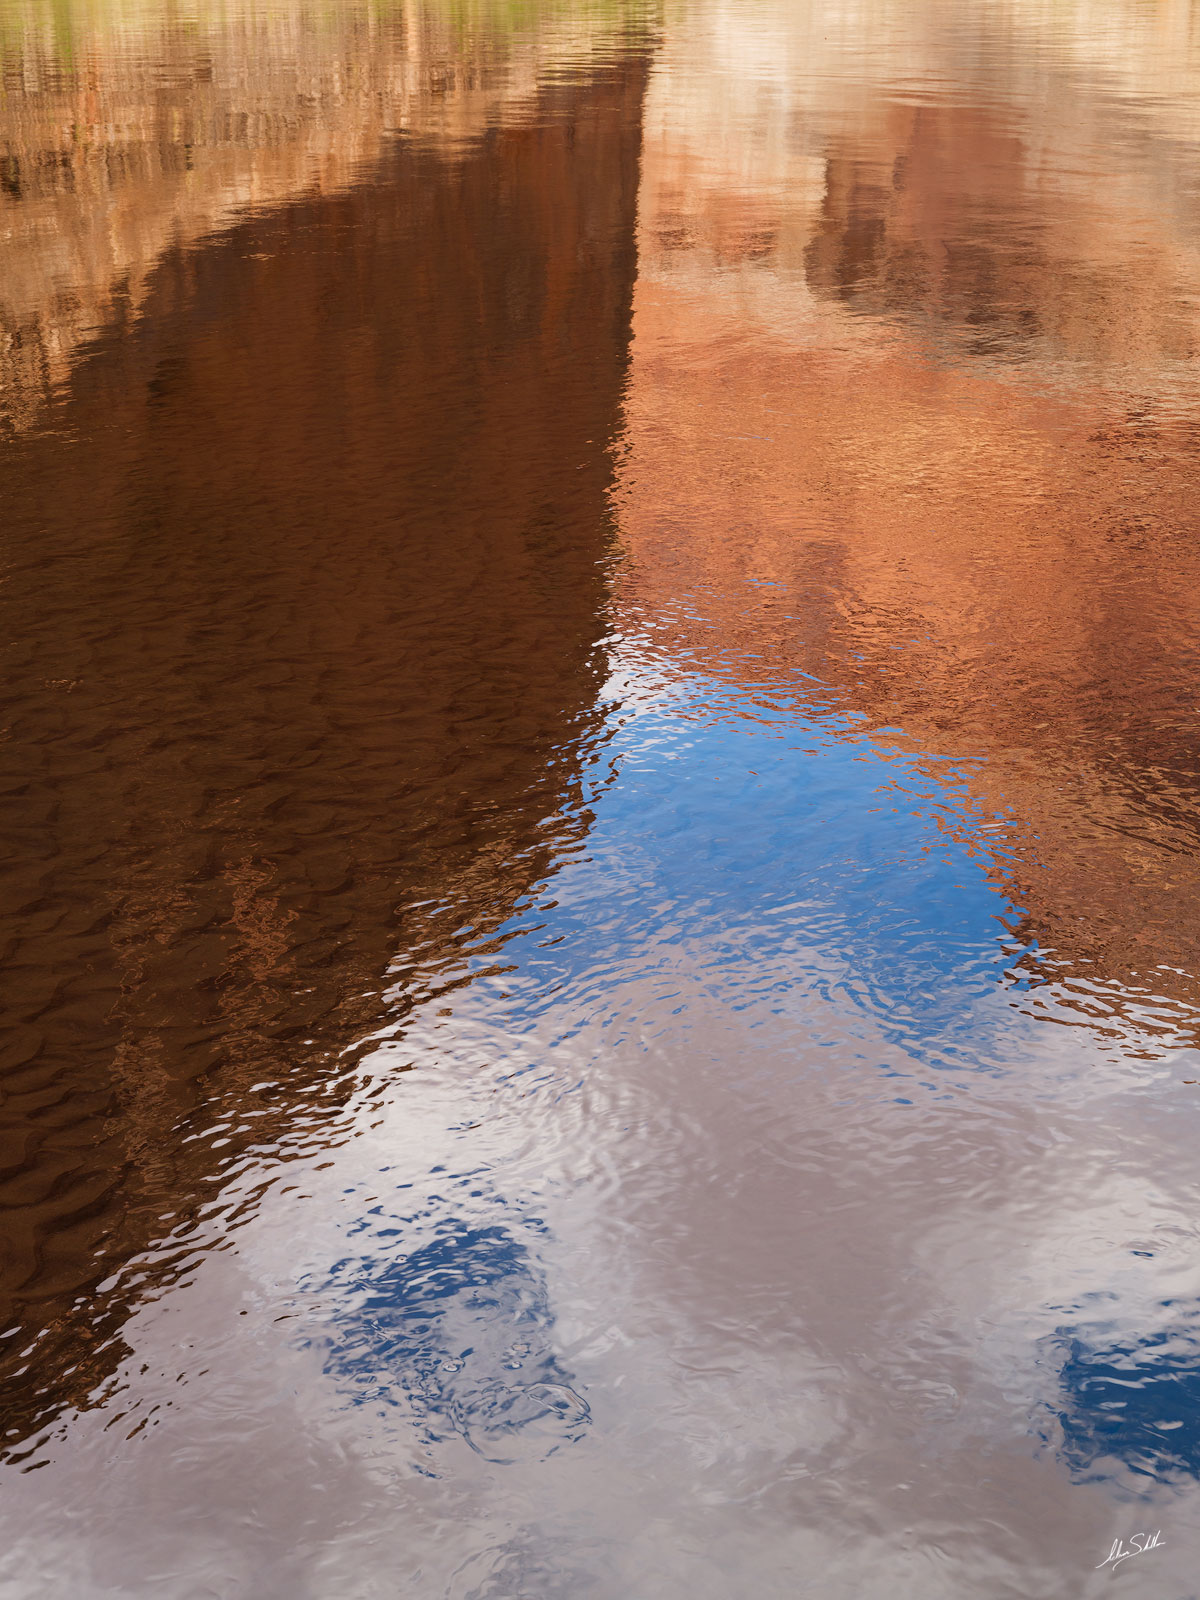 The cliffs of Marble Canyon reflect in the Colorado River. From Redwall Cavern in Grand Canyon National Park.